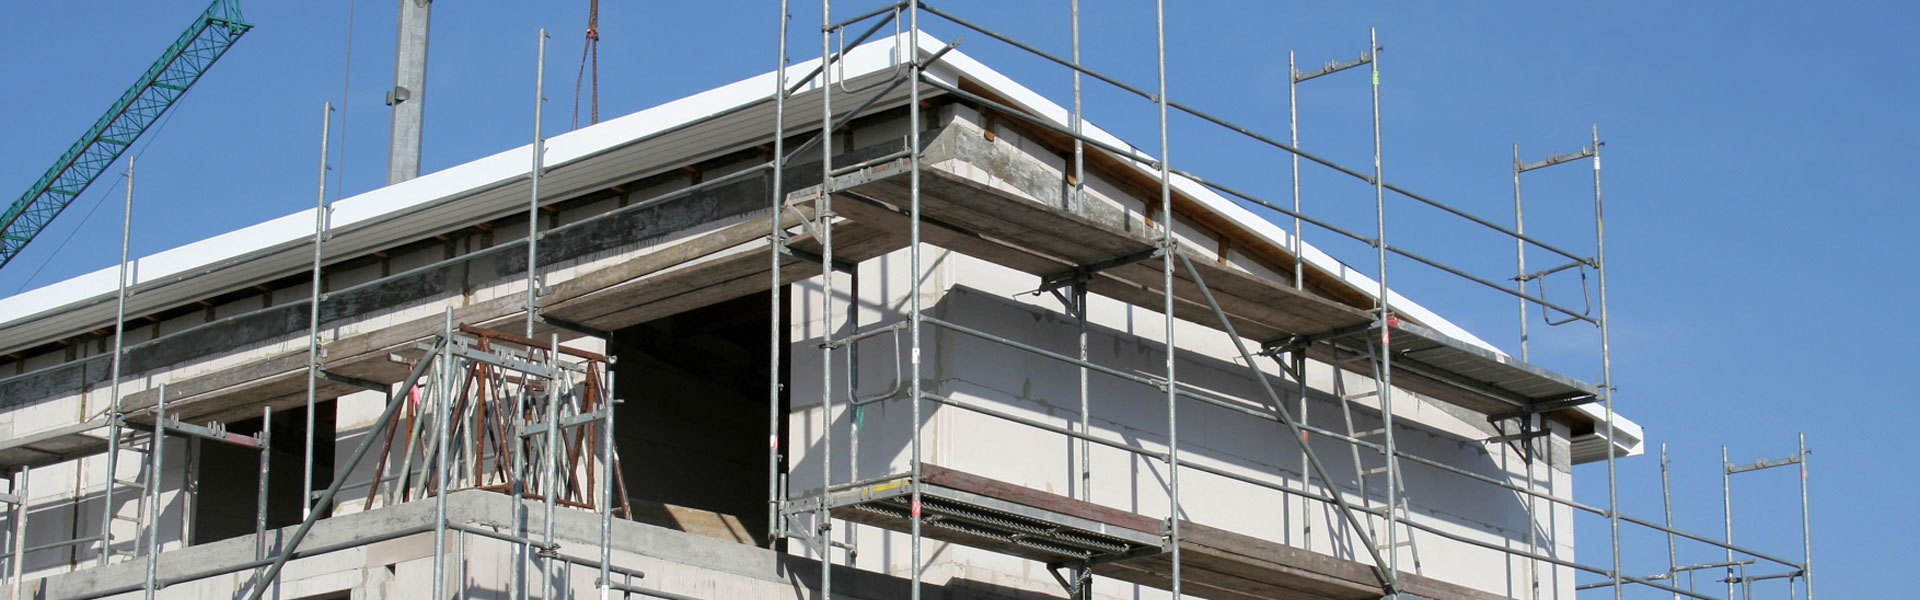 Scaffolding Hire Wicklow by Diamond Scaffolding image 1